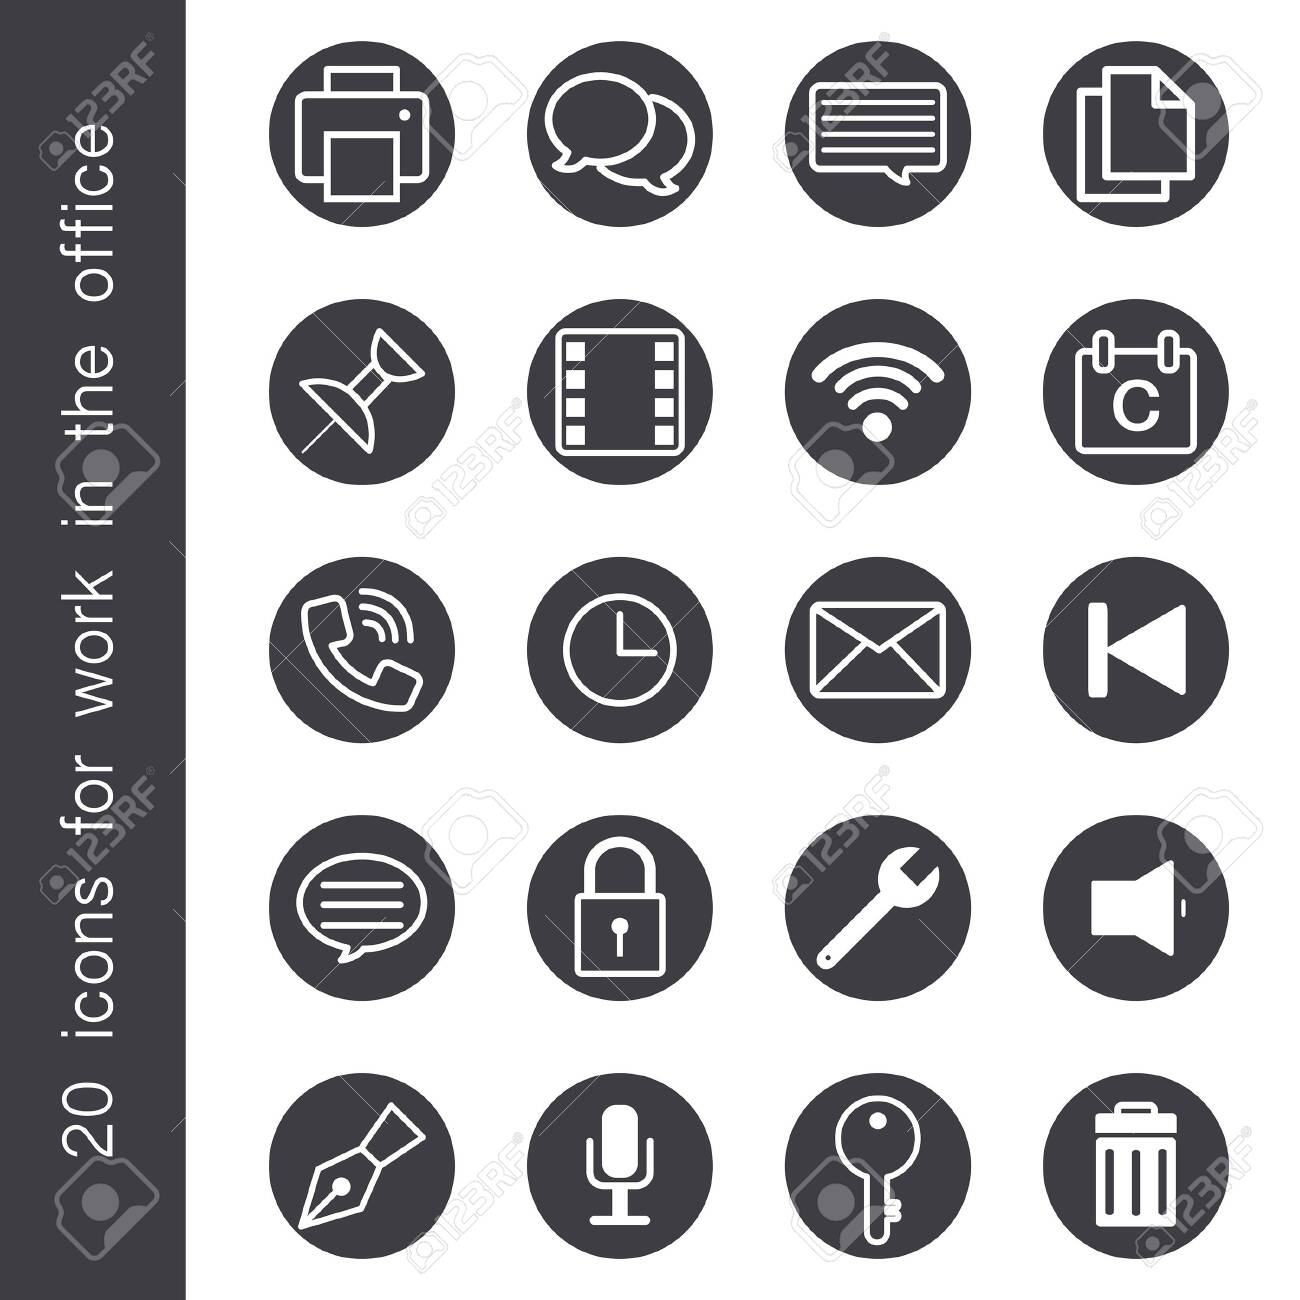 Icons for office use with various styles. - 123528997